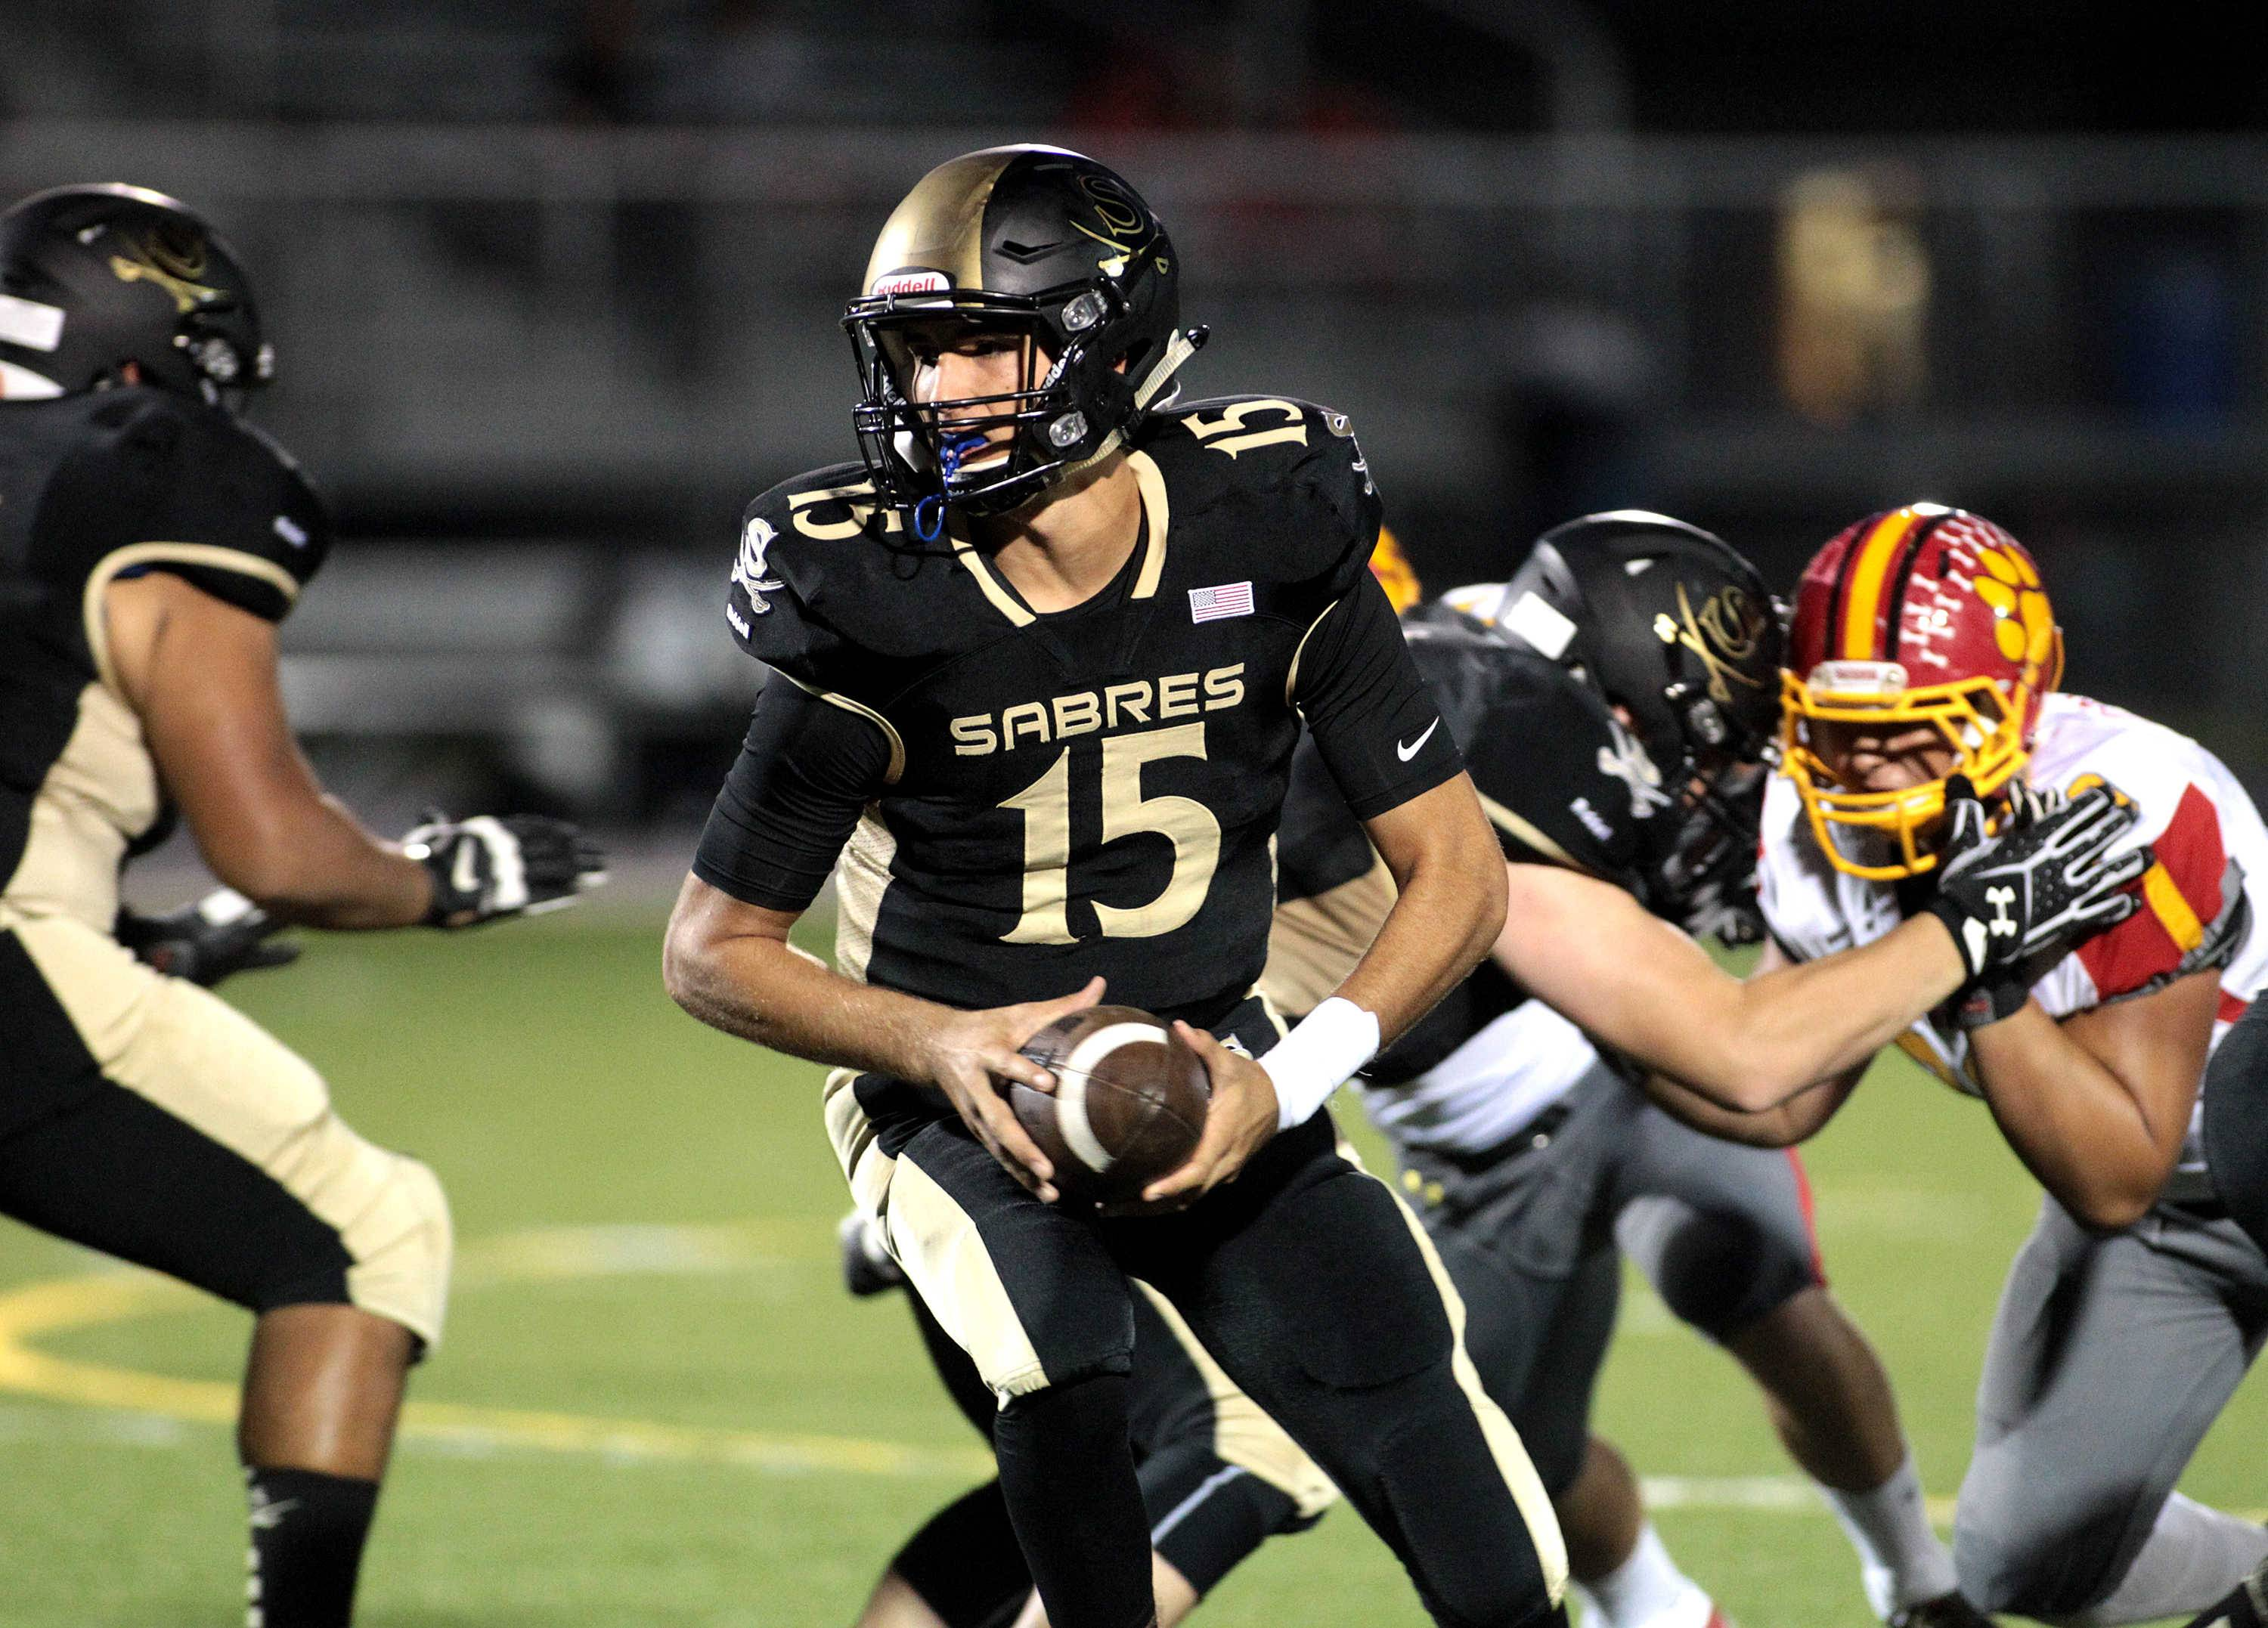 Streamwood quarterback Brendon Marton (15) returns to lead the Sabres.